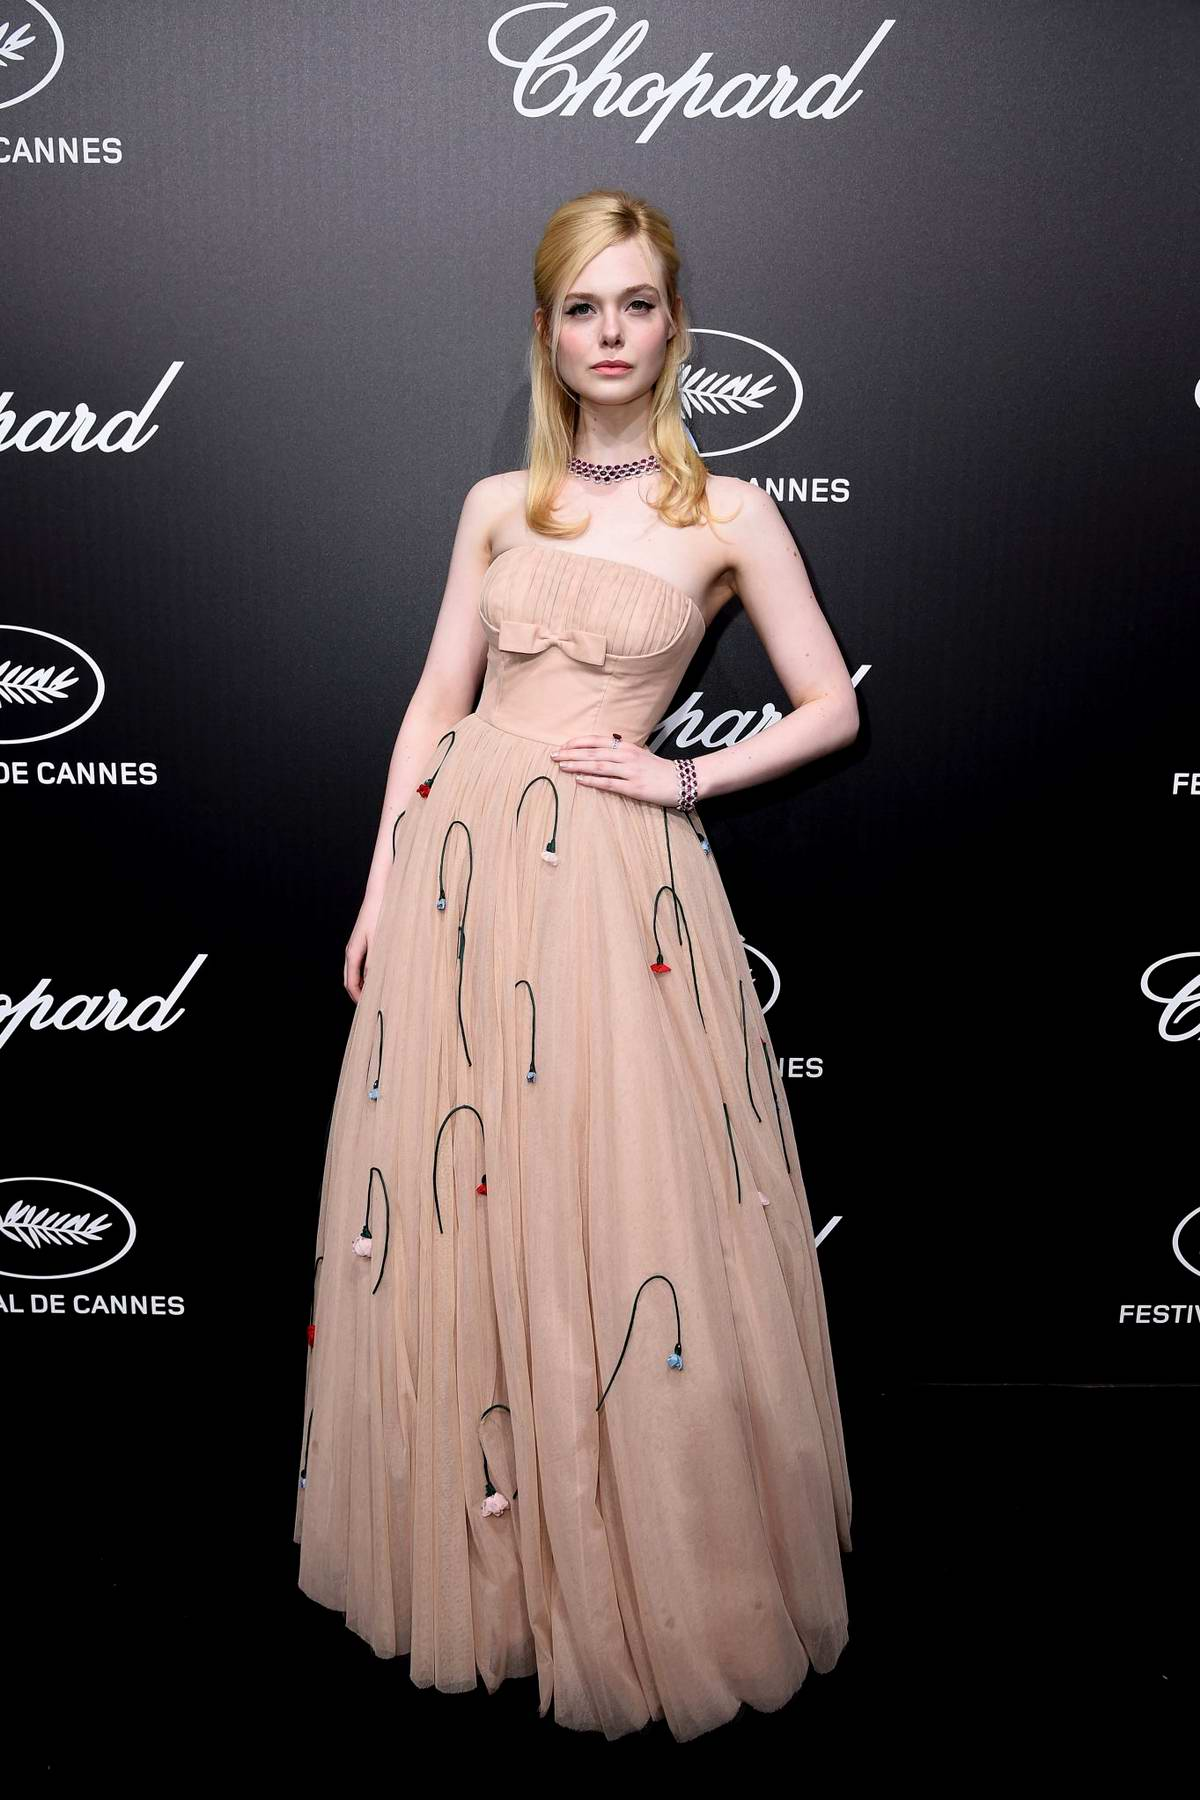 Elle Fanning attends the official Trophee Chopard Dinner Photocall during the 72nd annual Cannes Film Festival in Cannes, France